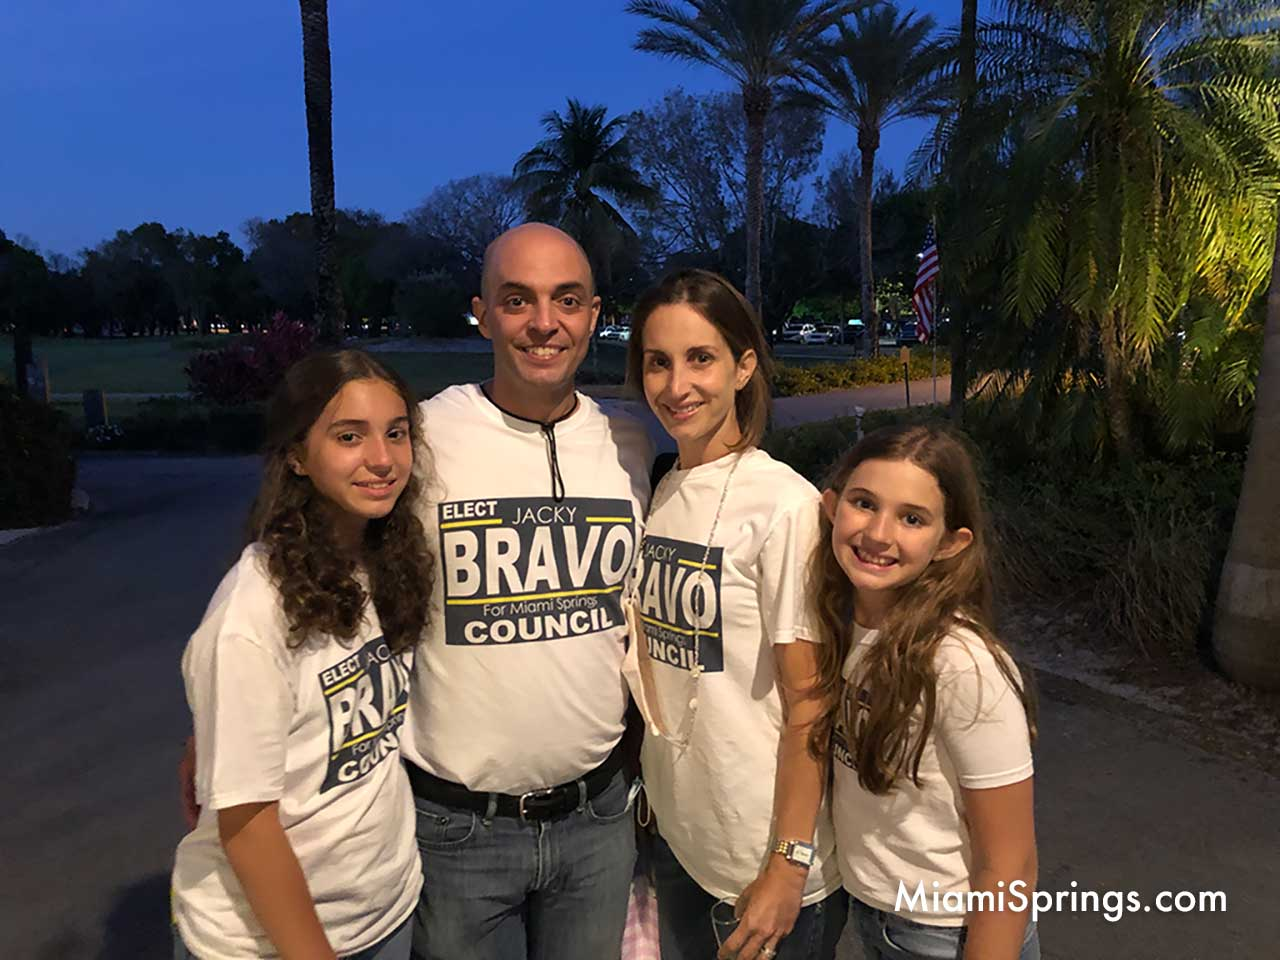 Jacky Bravo with her husband and daughters.